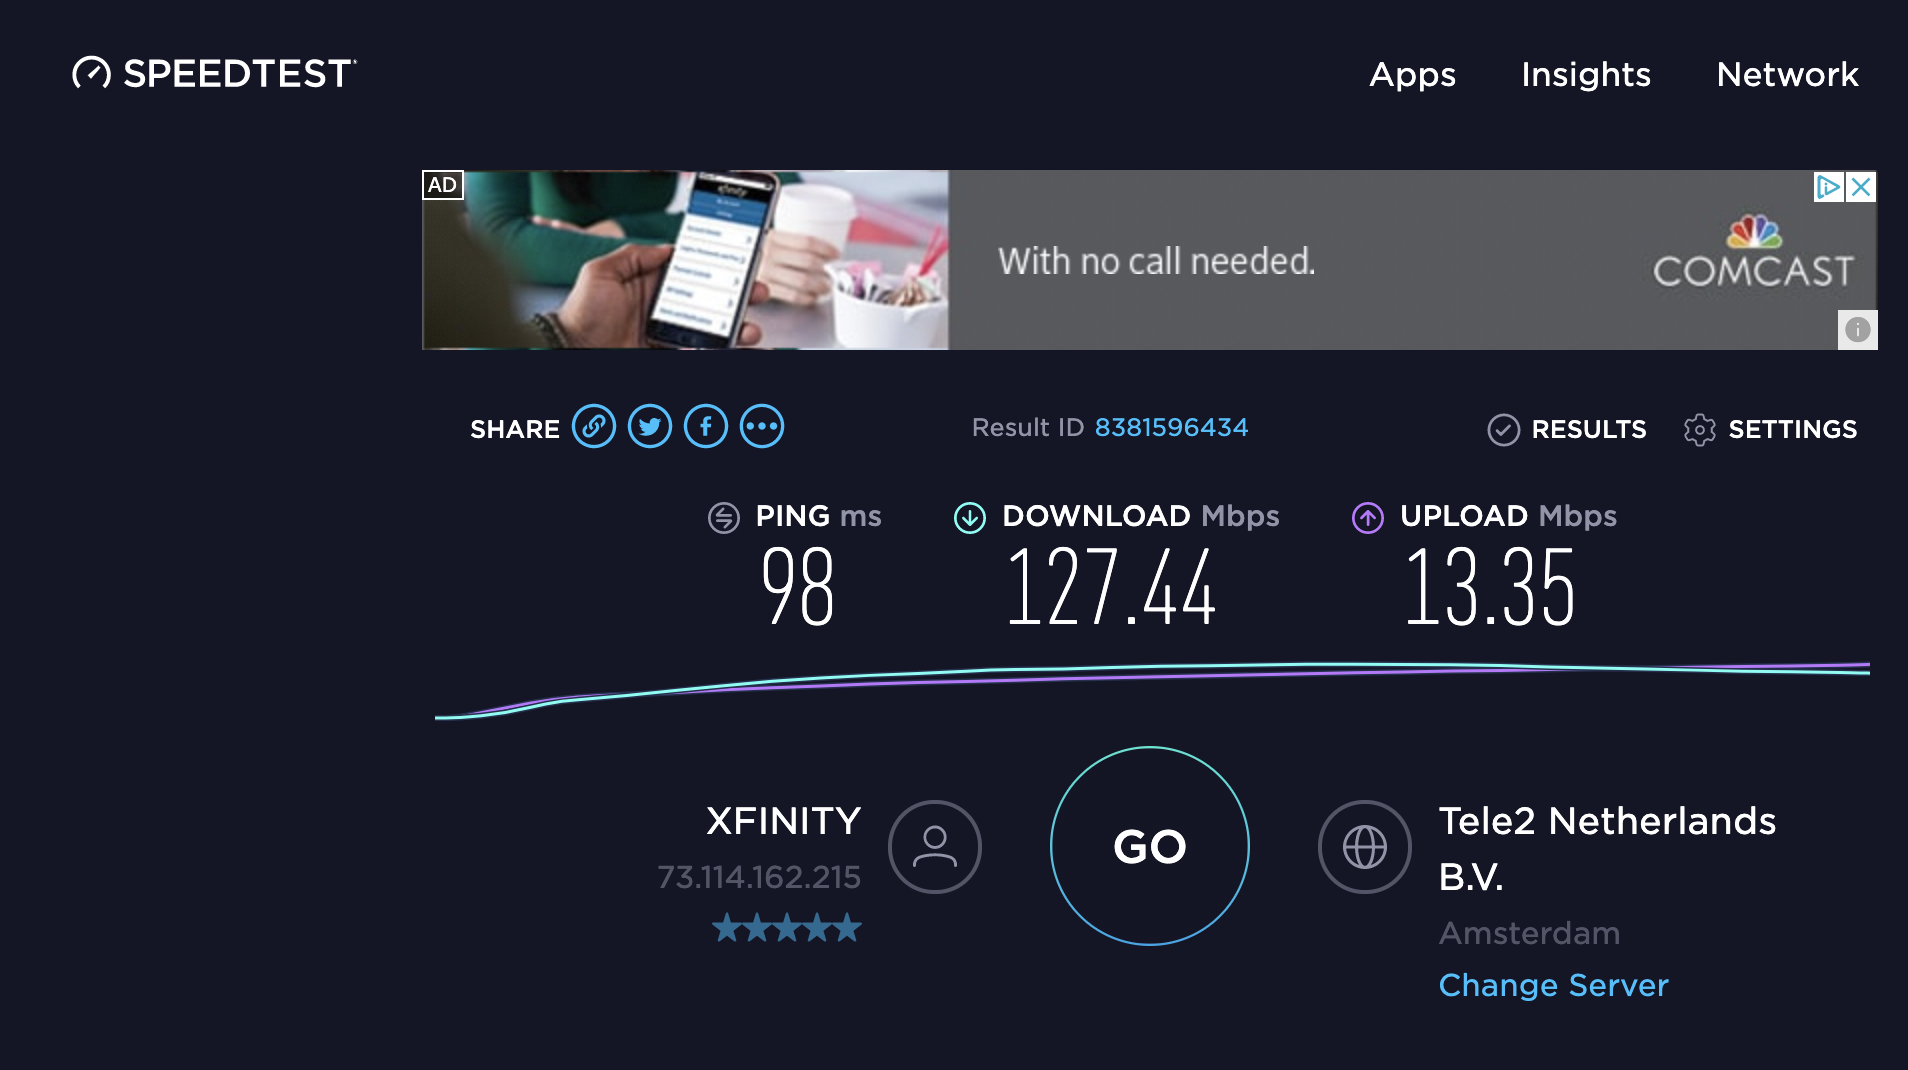 I am not seeing the network performance I'm expecting - what should